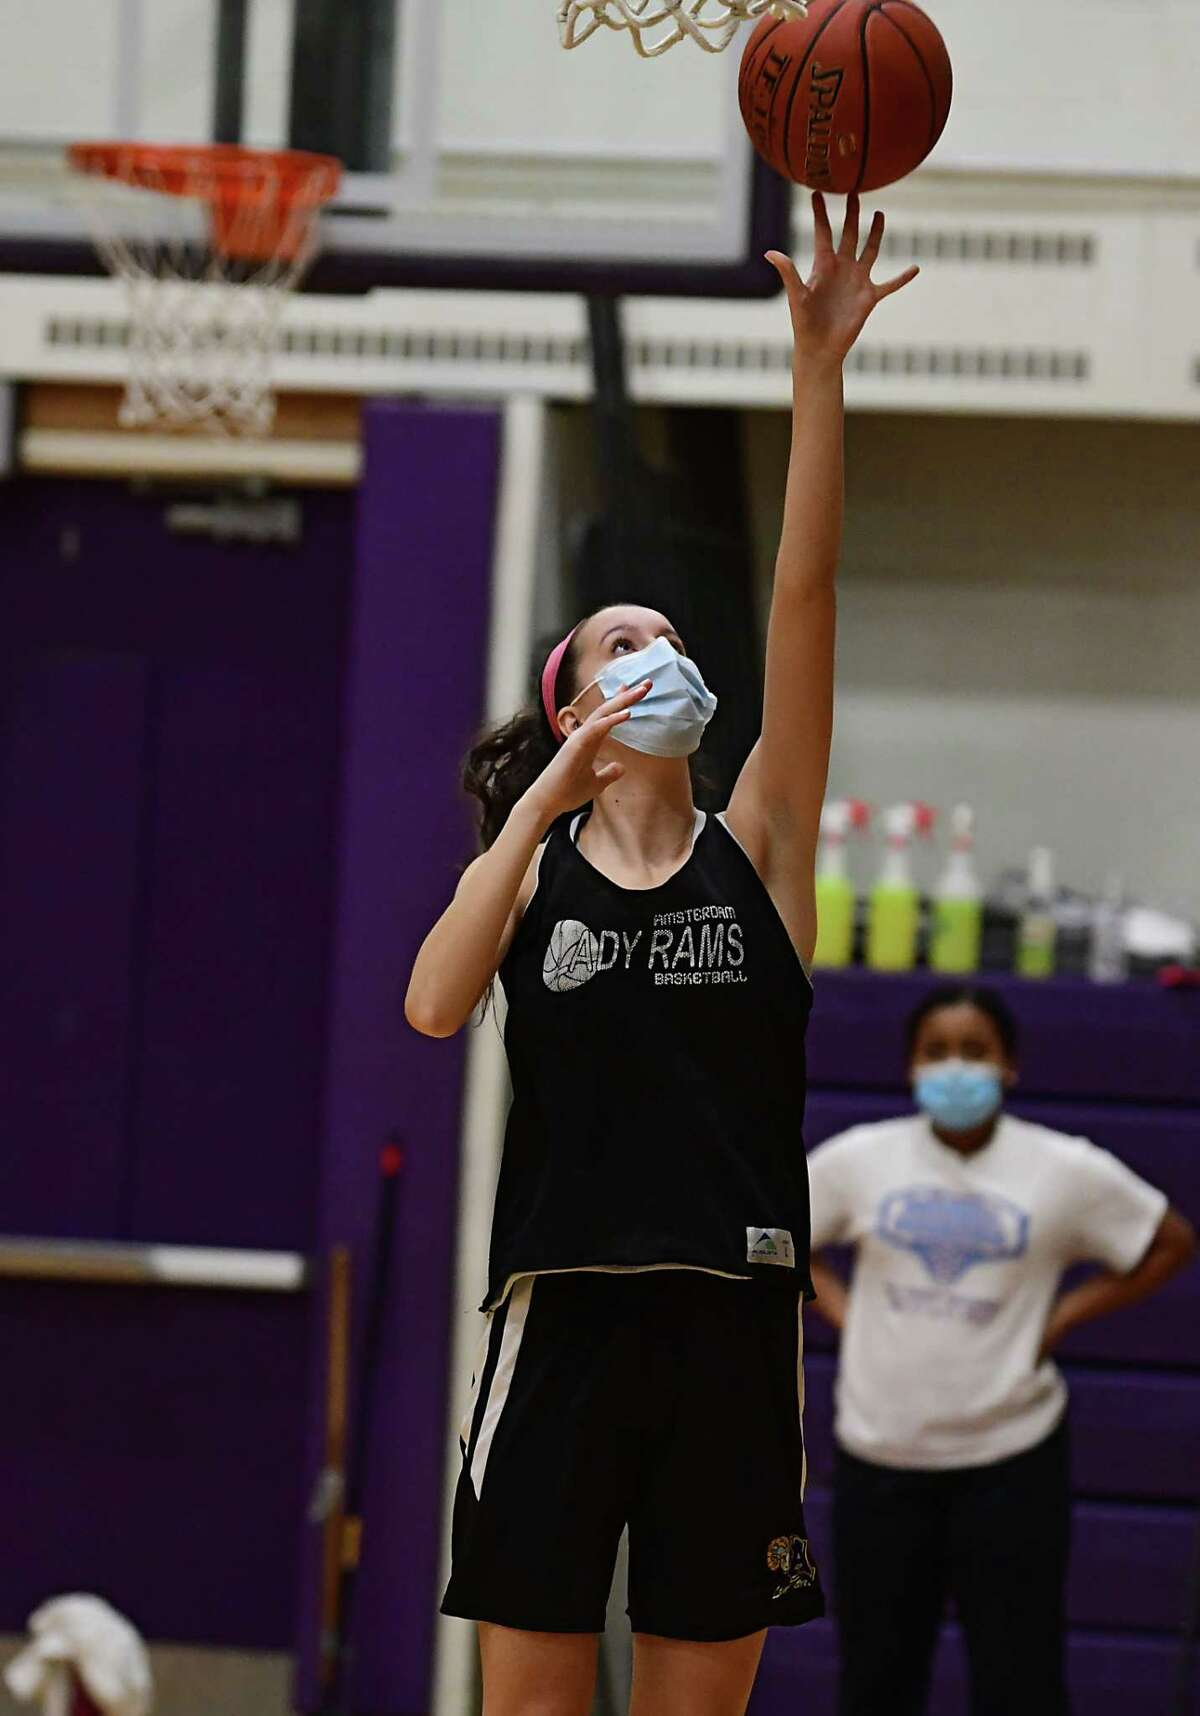 Amsterdam senior Antonia May, who signed to play with UMBC, makes a layup during basketball practice with her team on Thursday, Feb. 4, 2021 in Amsterdam, N.Y. (Lori Van Buren/Times Union)